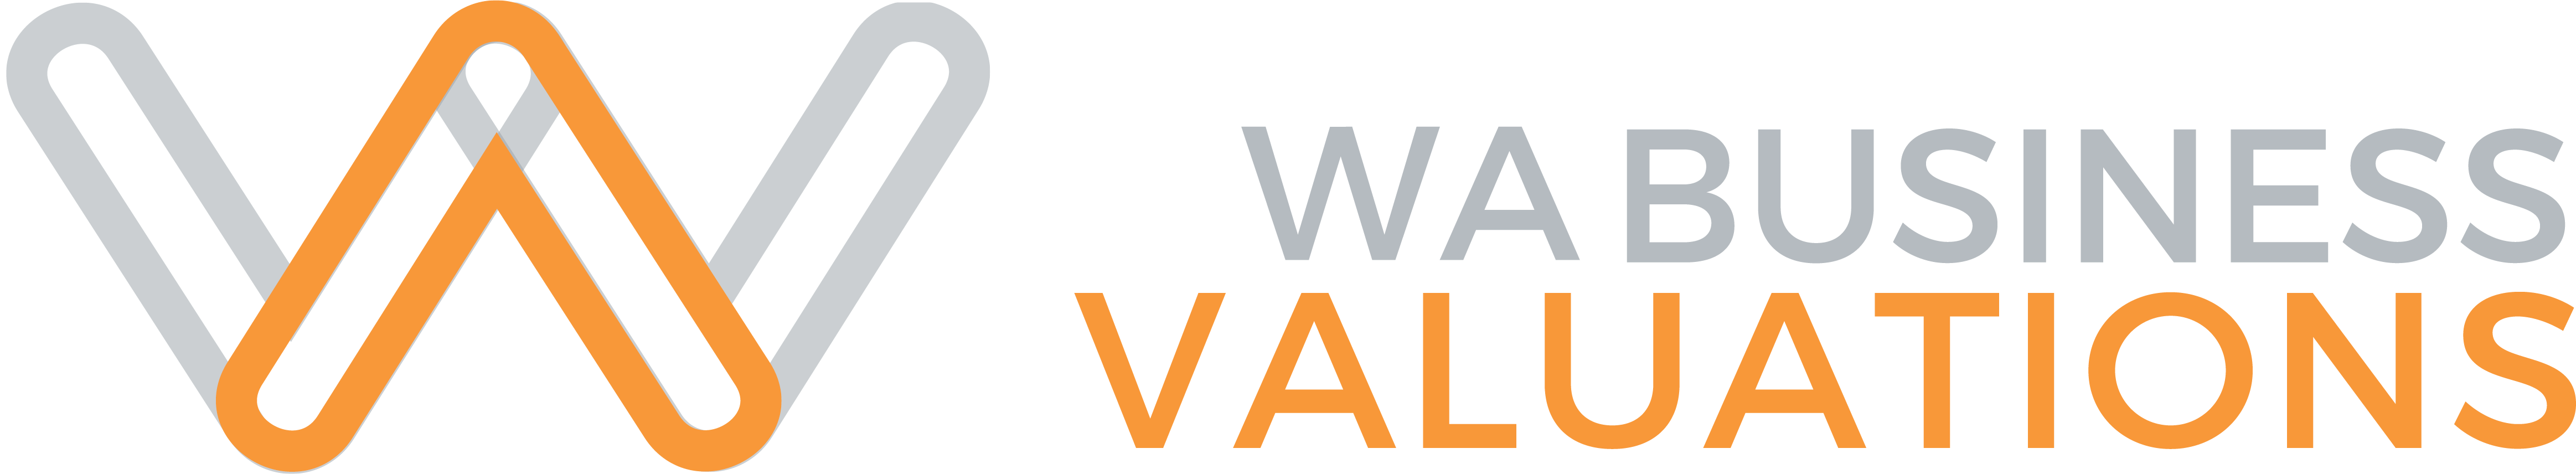 WA Business Valuations